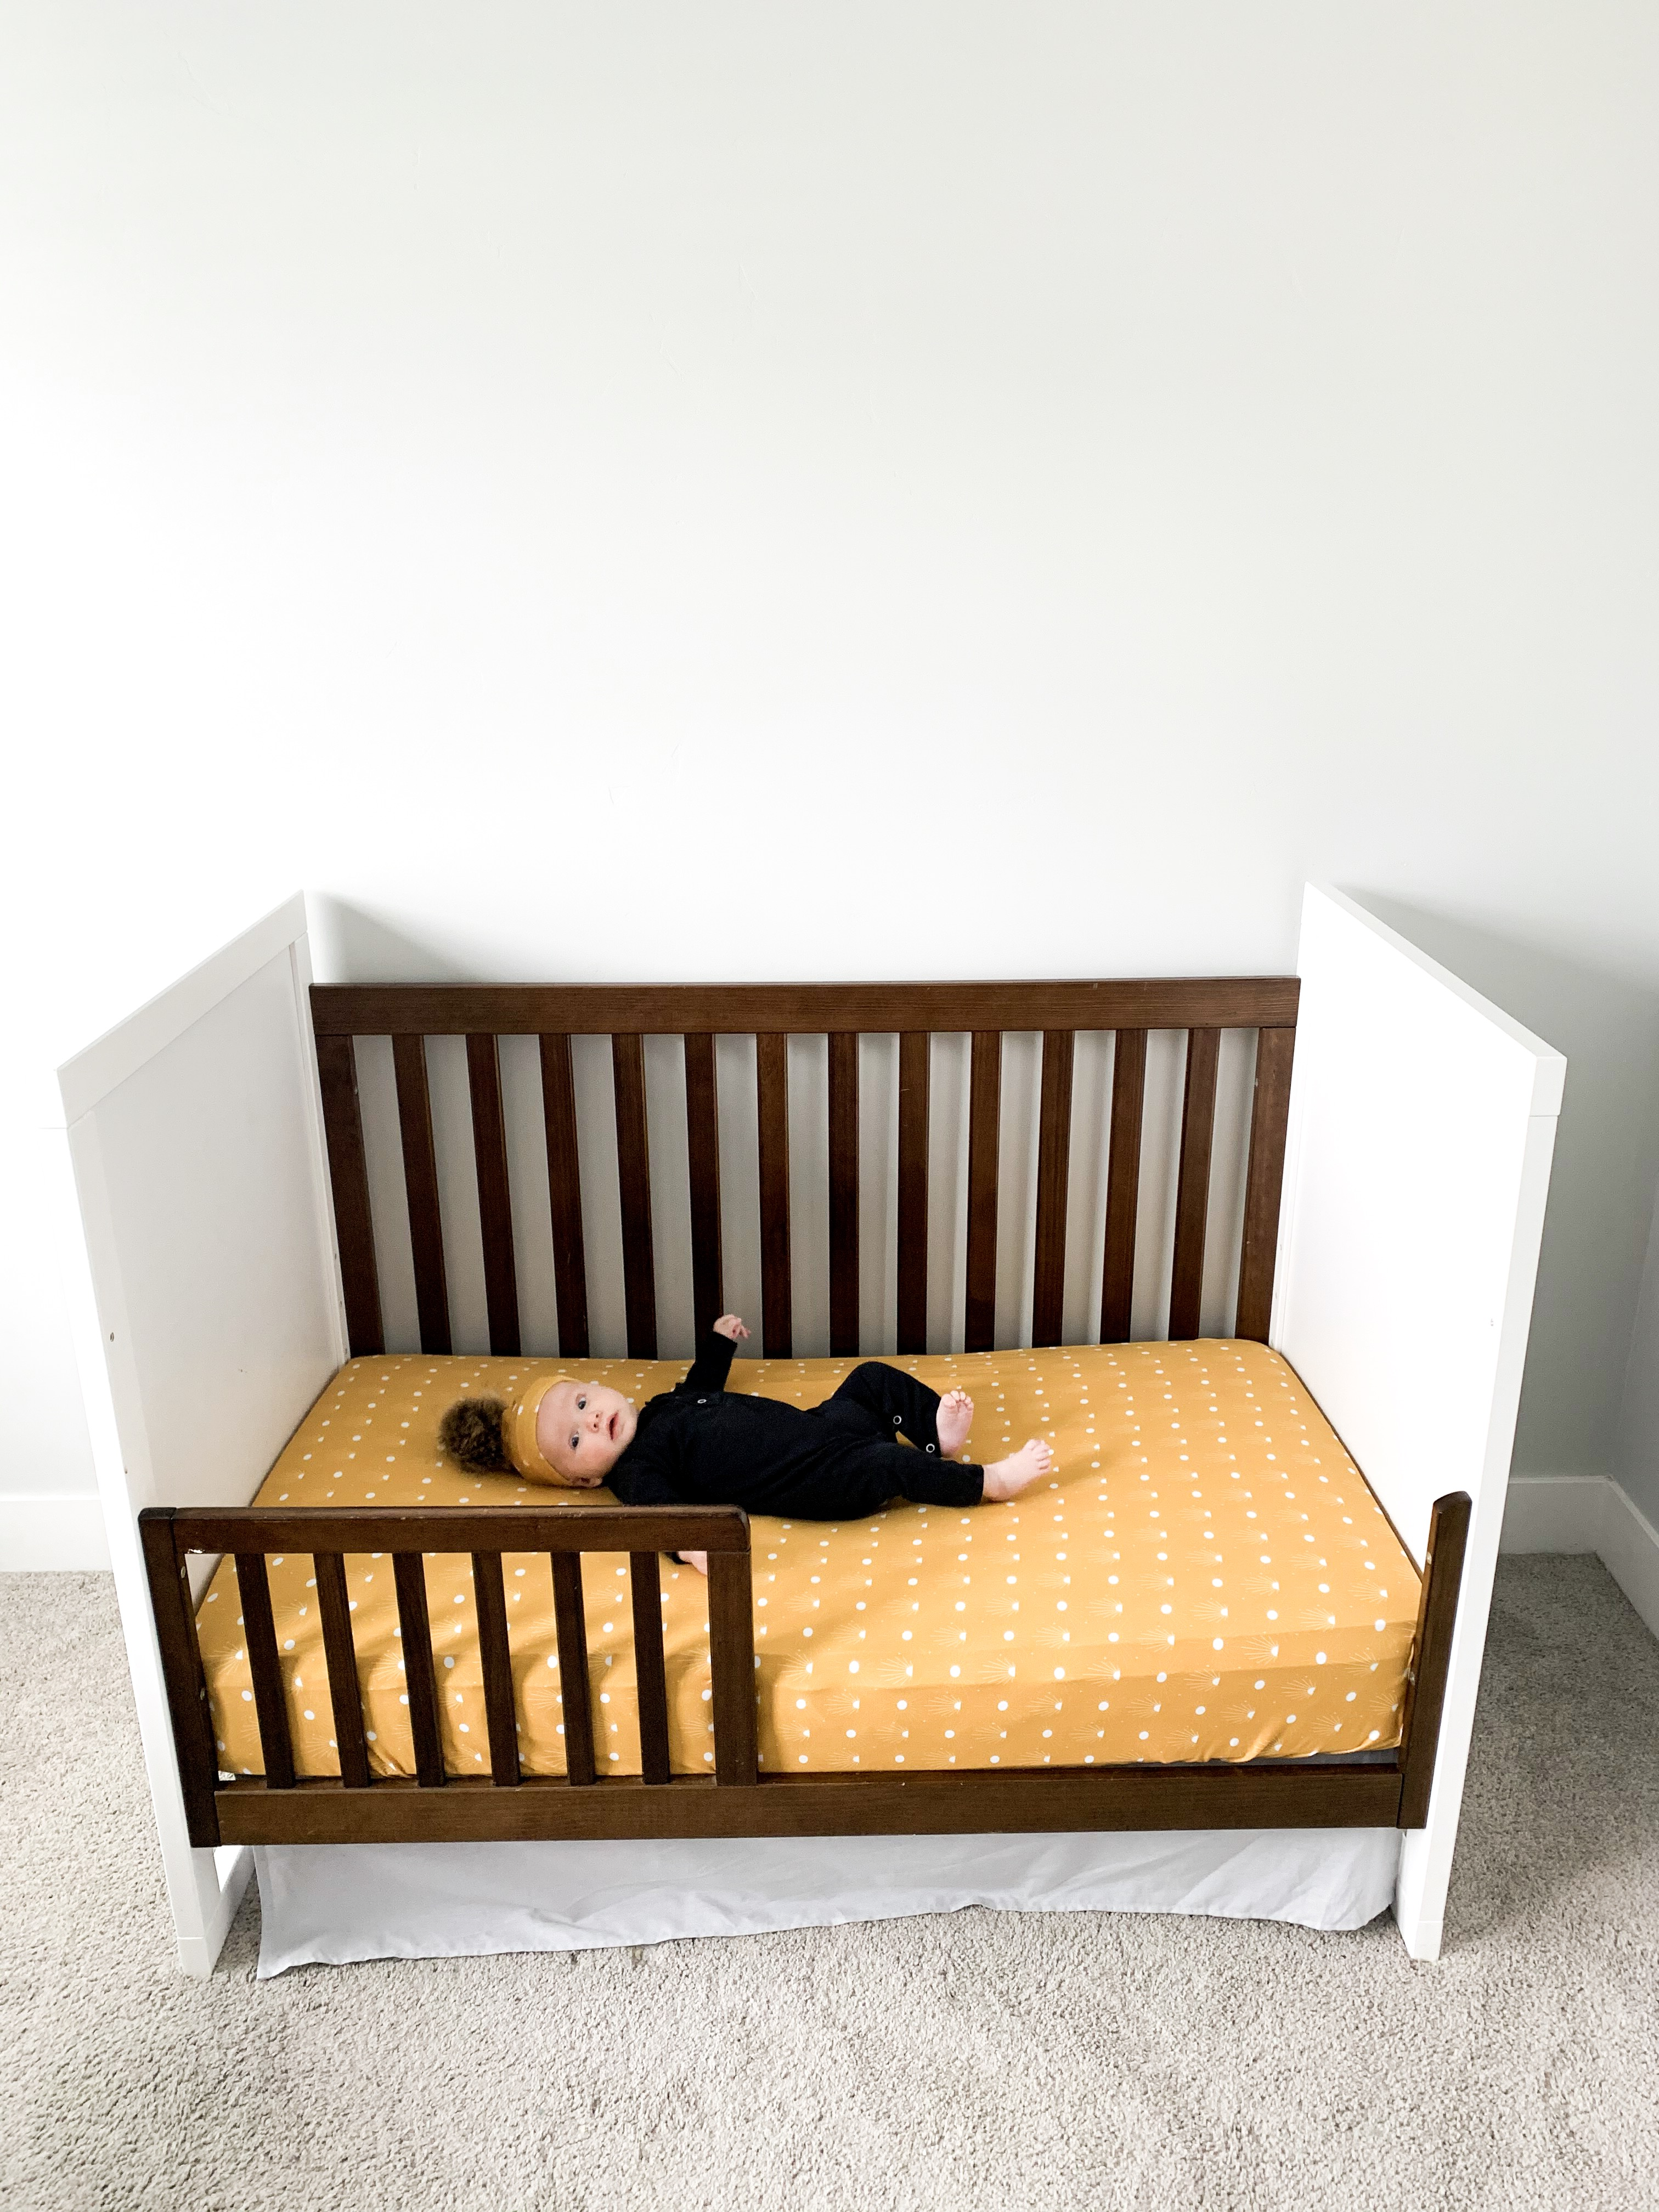 baby on a toddler bed with a yellow crib sheet.